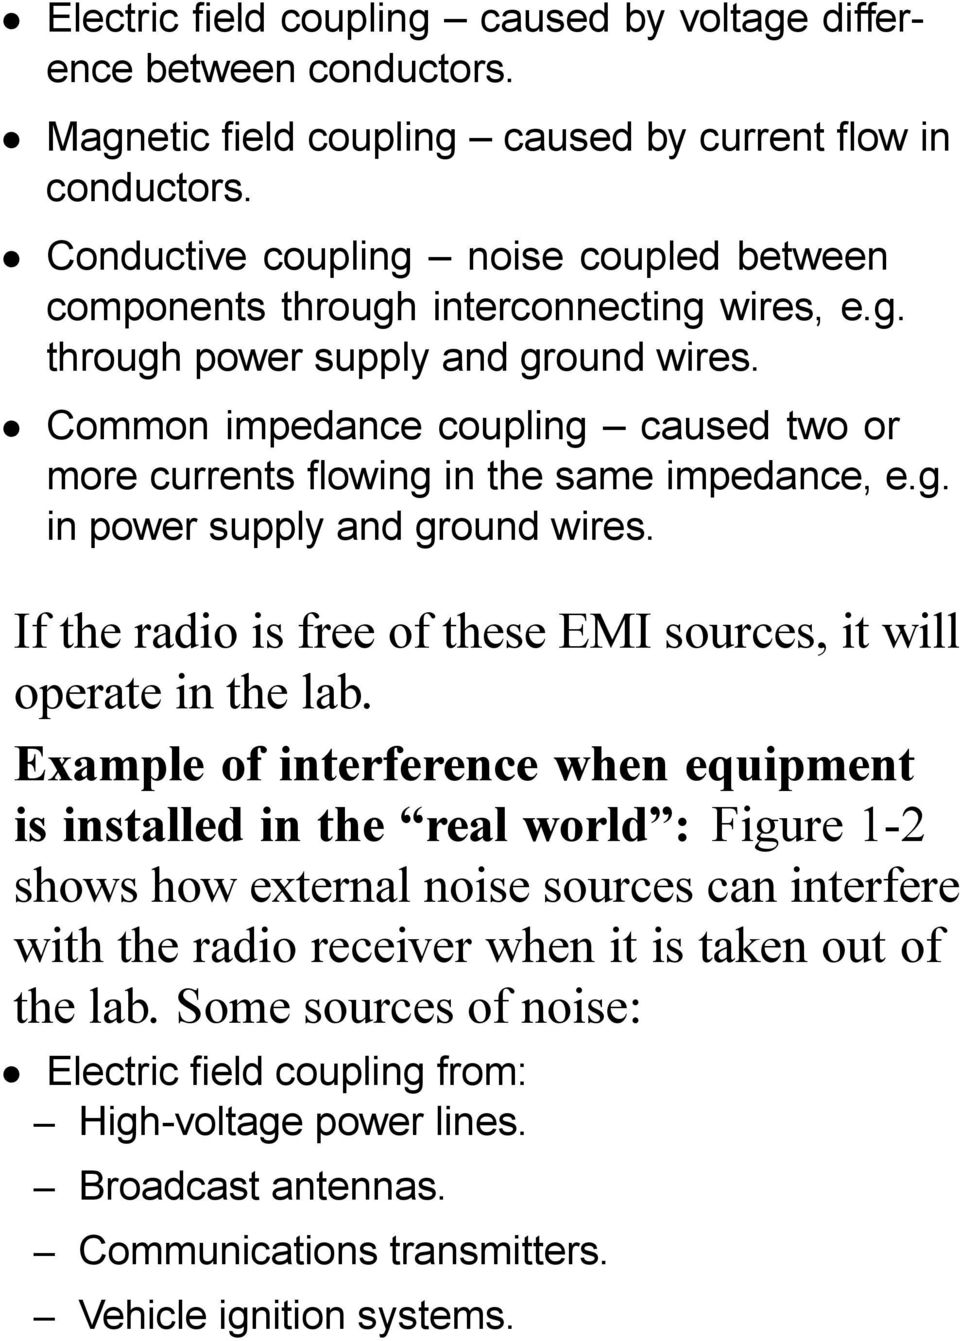 Common impedance coupling caused two or more currents flowing in the same impedance, e.g. in power supply and ground wires. If the radio is free of these EMI sources, it will operate in the lab.